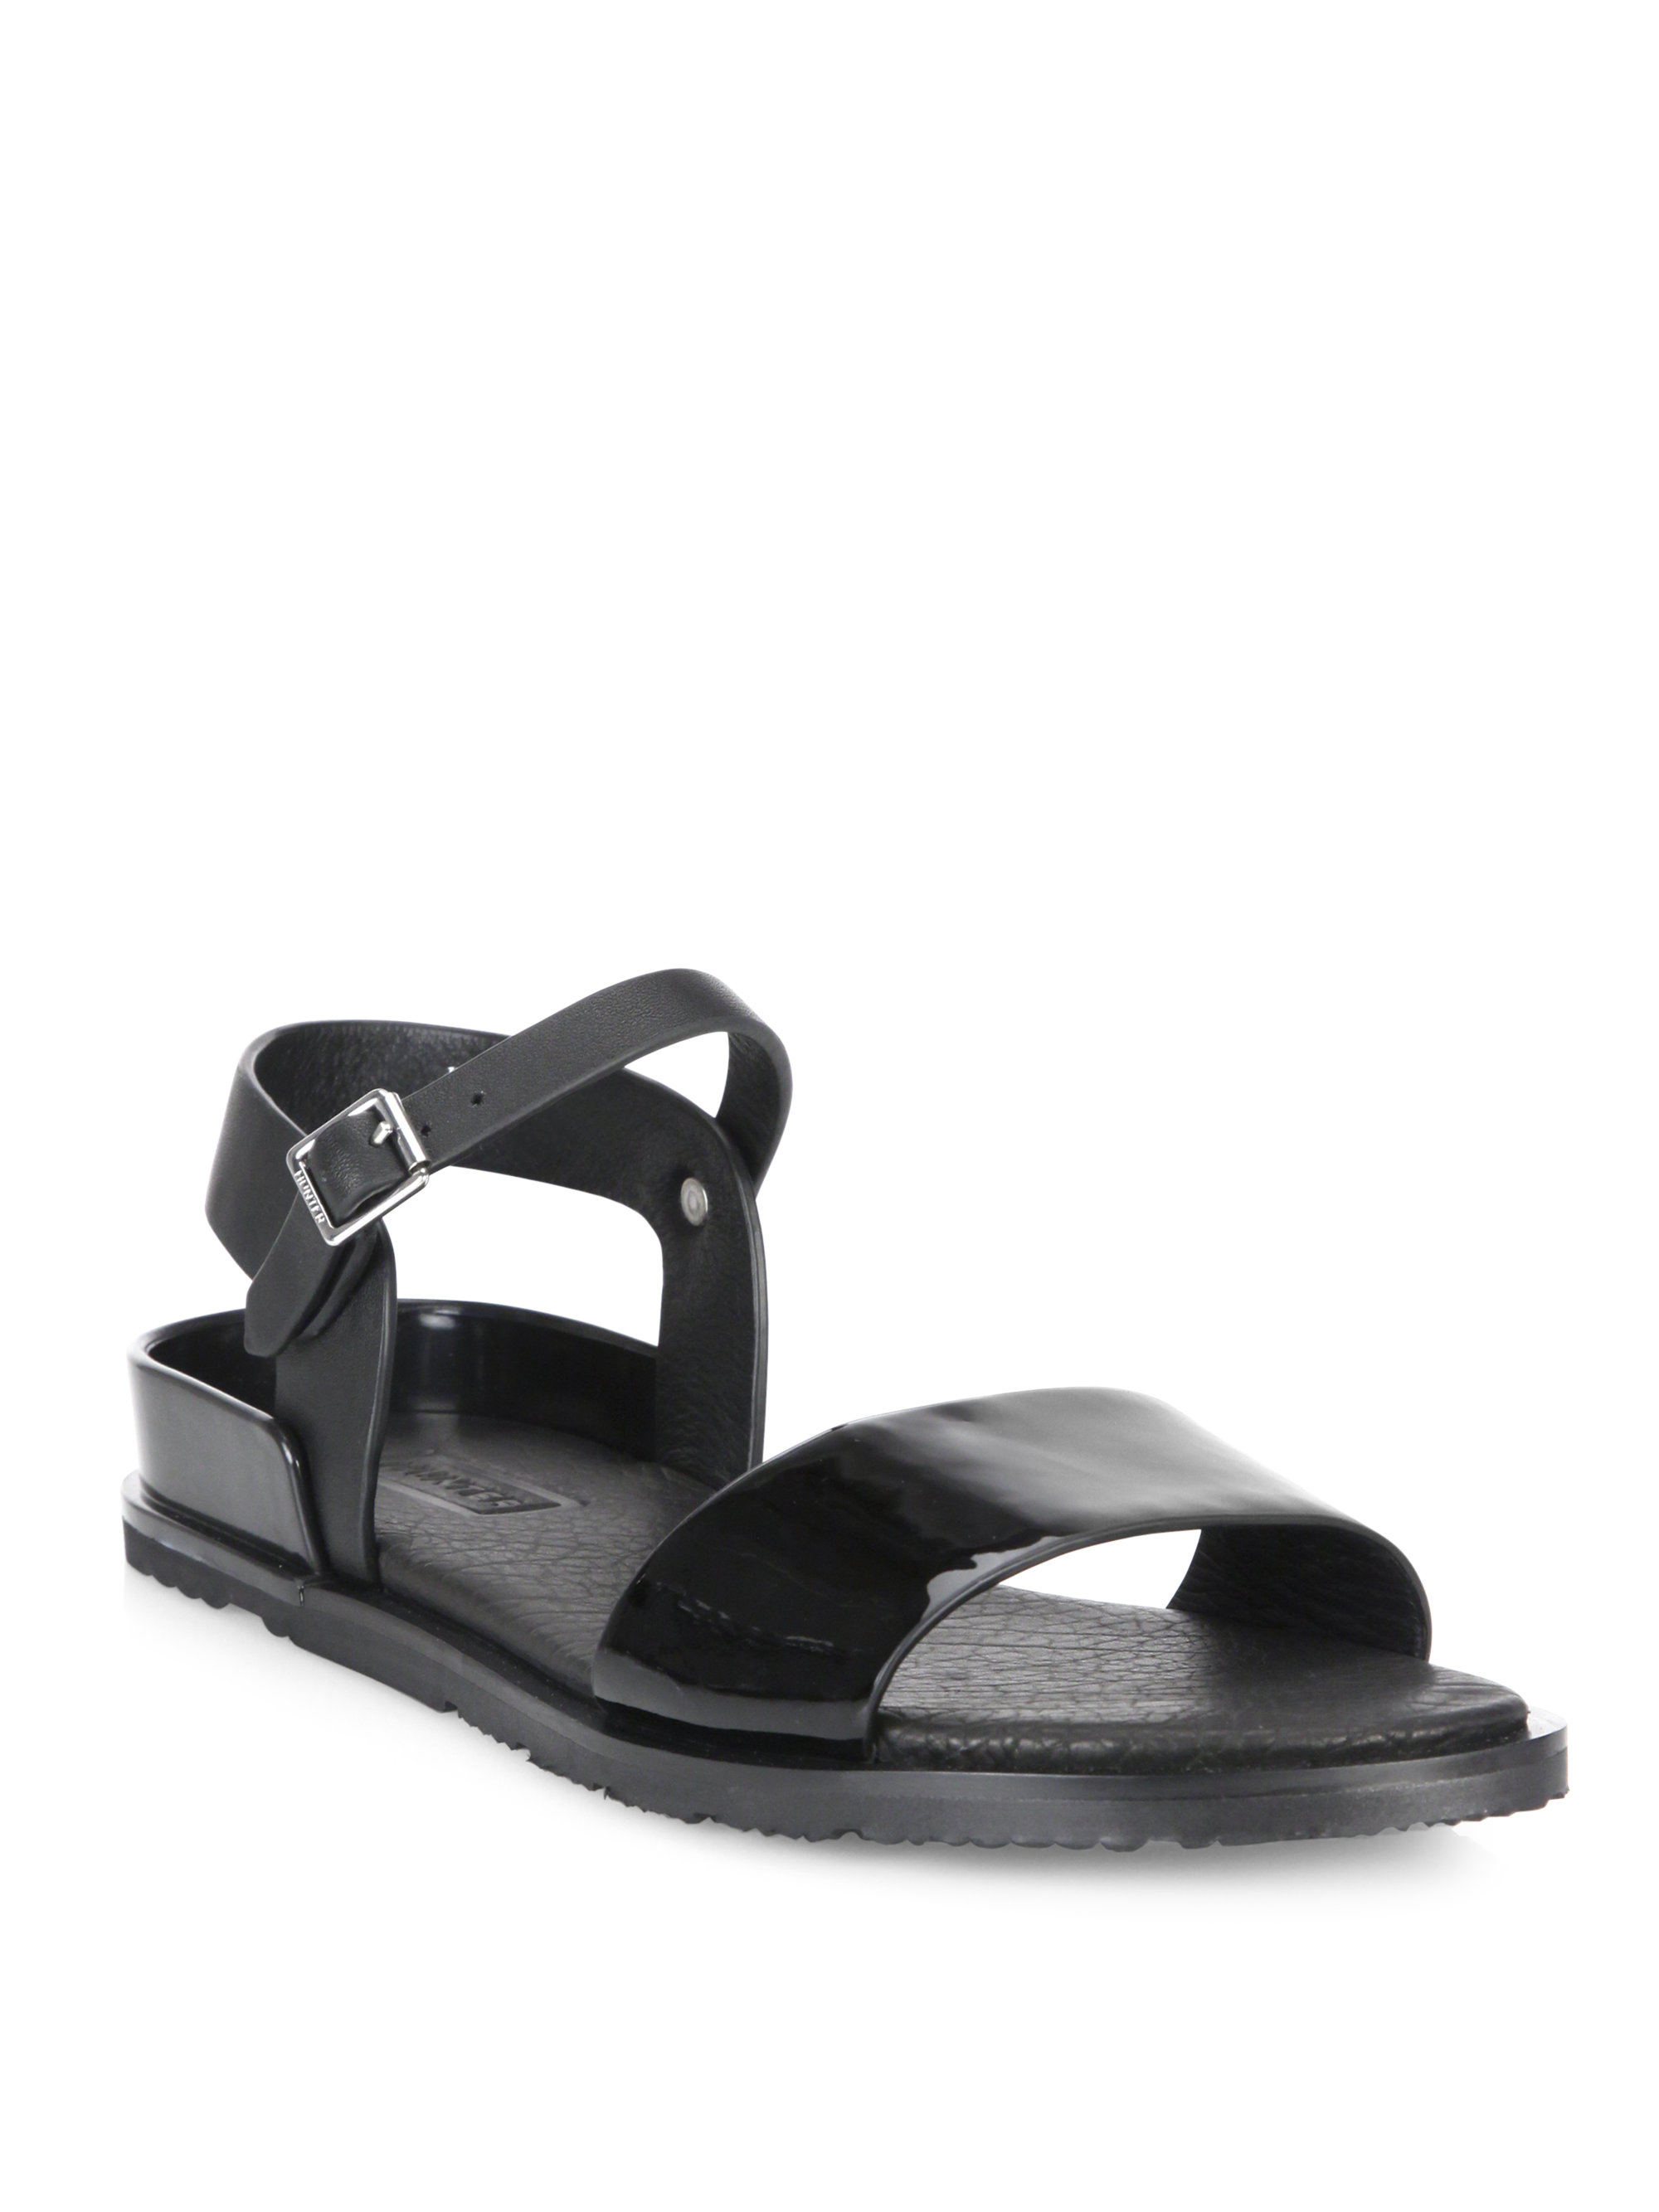 Hunter Leather Ankle Strap Sandals free shipping cheap real MOcOA9o